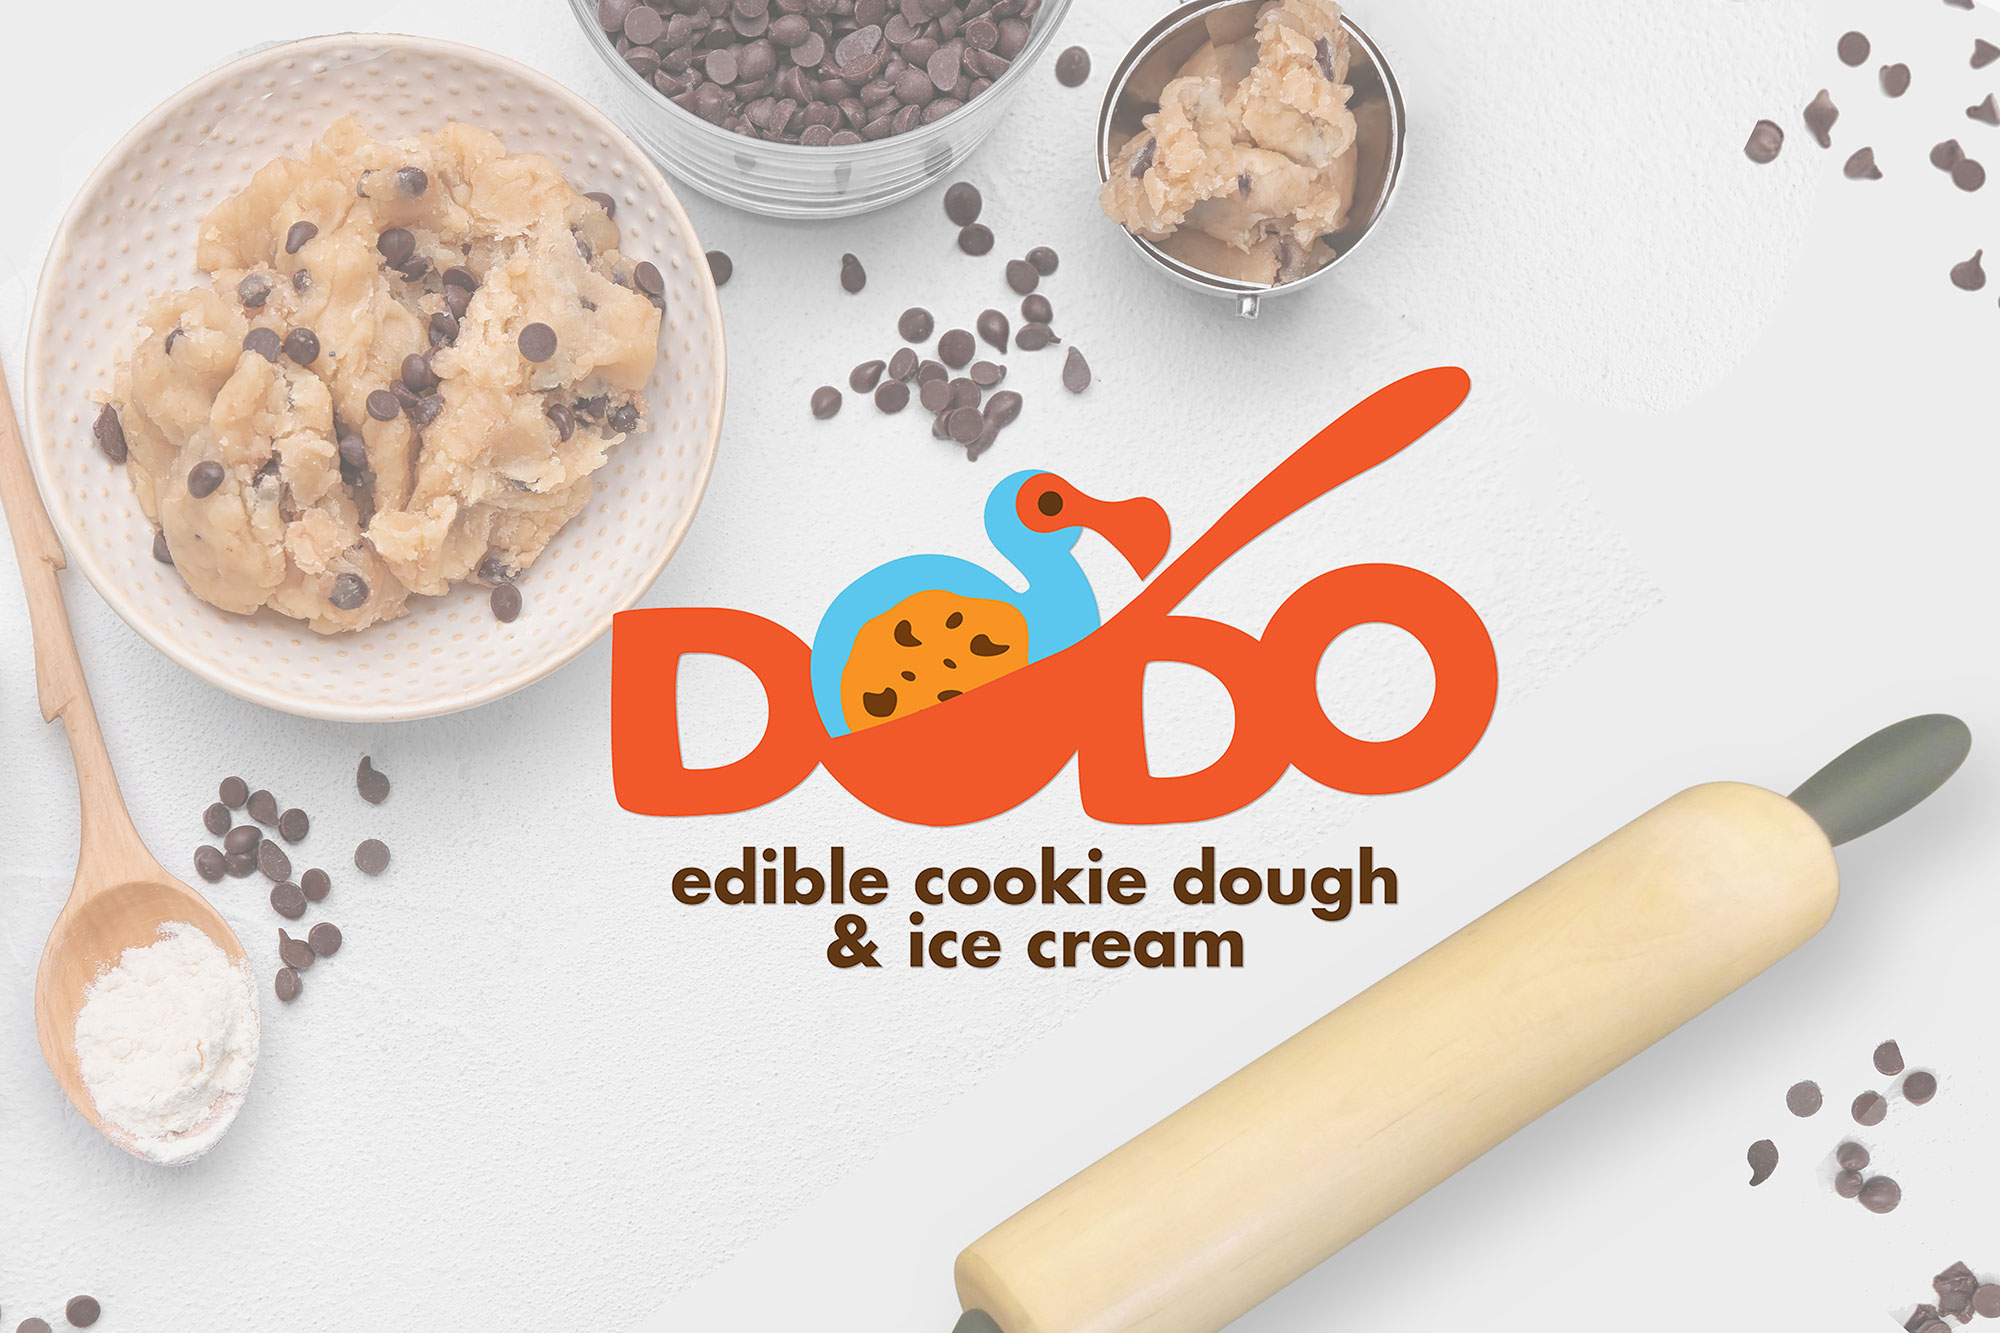 edible cookie dough business